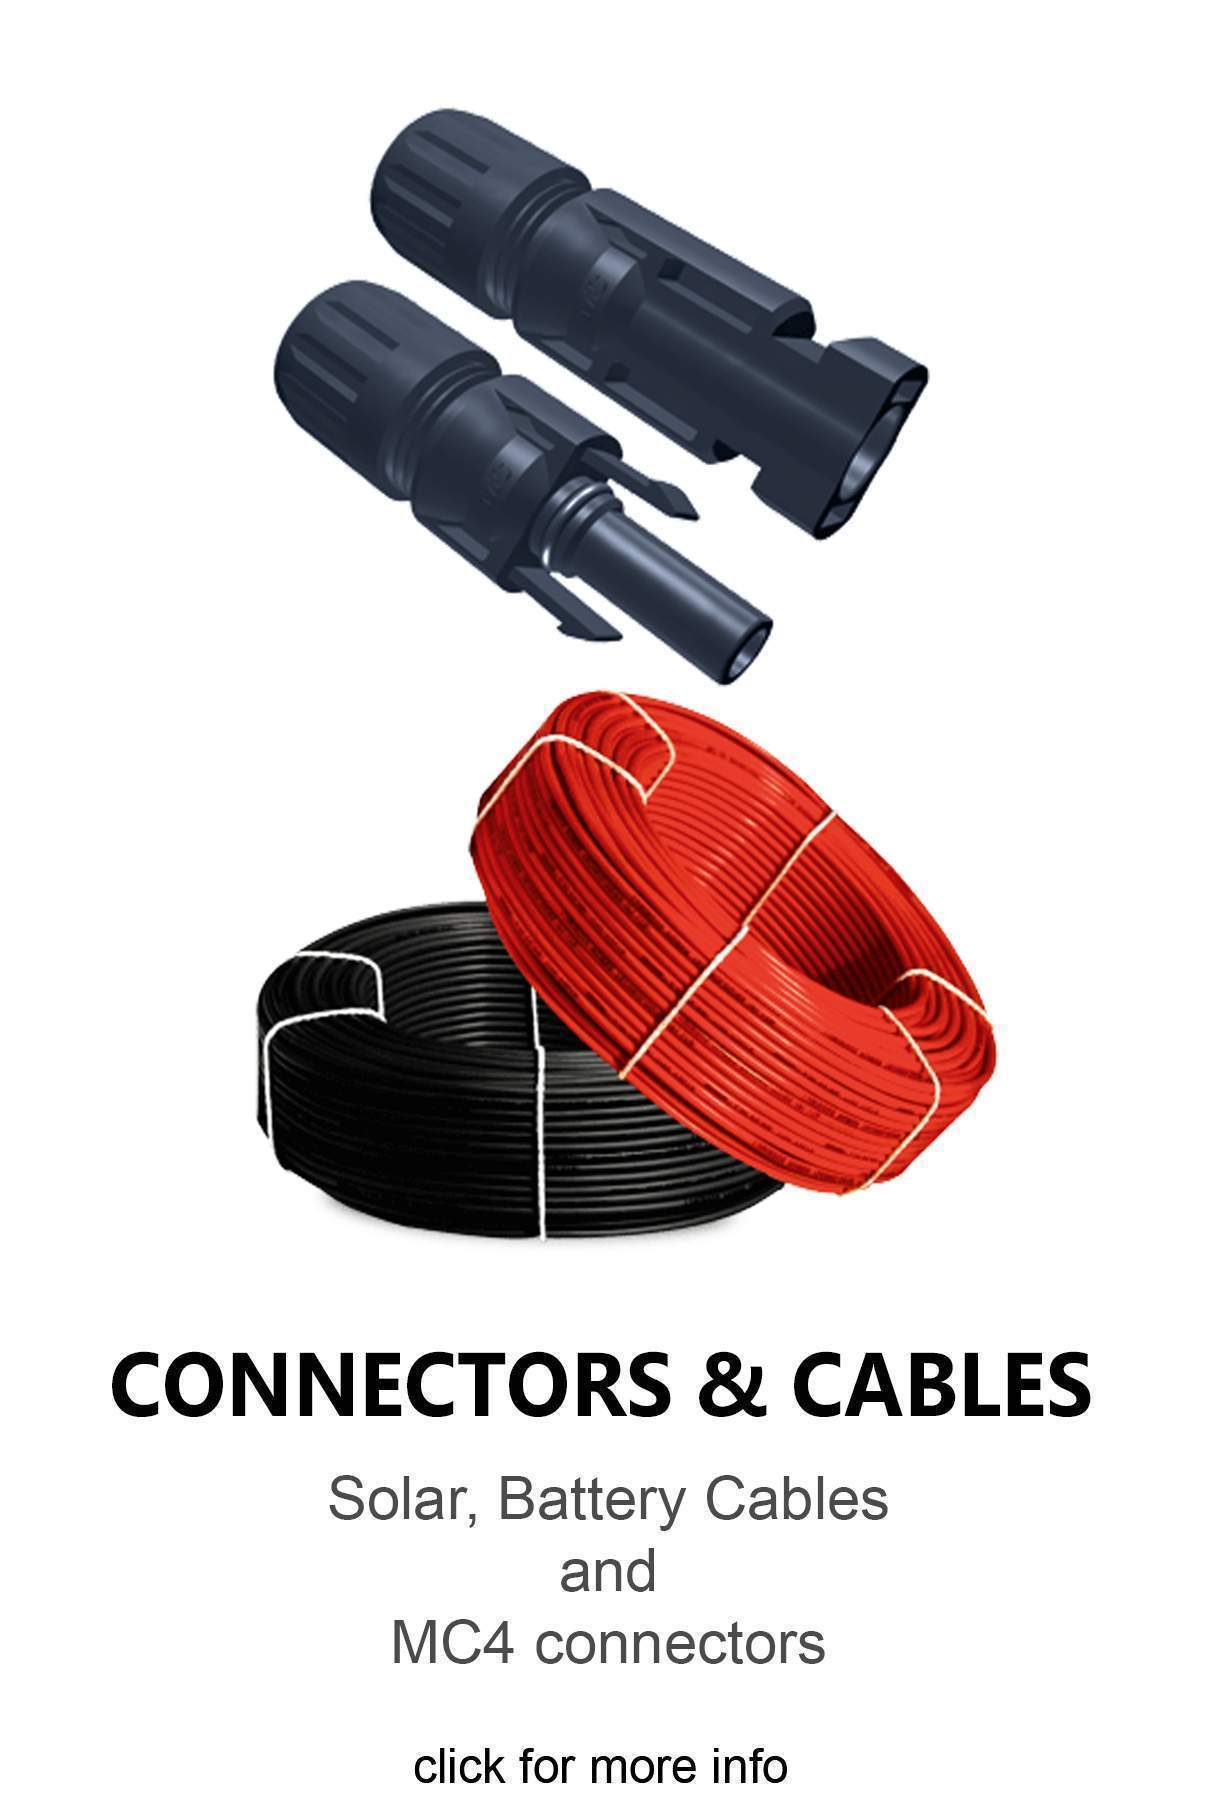 mc4 connectors, solar wire, battery cables Durban